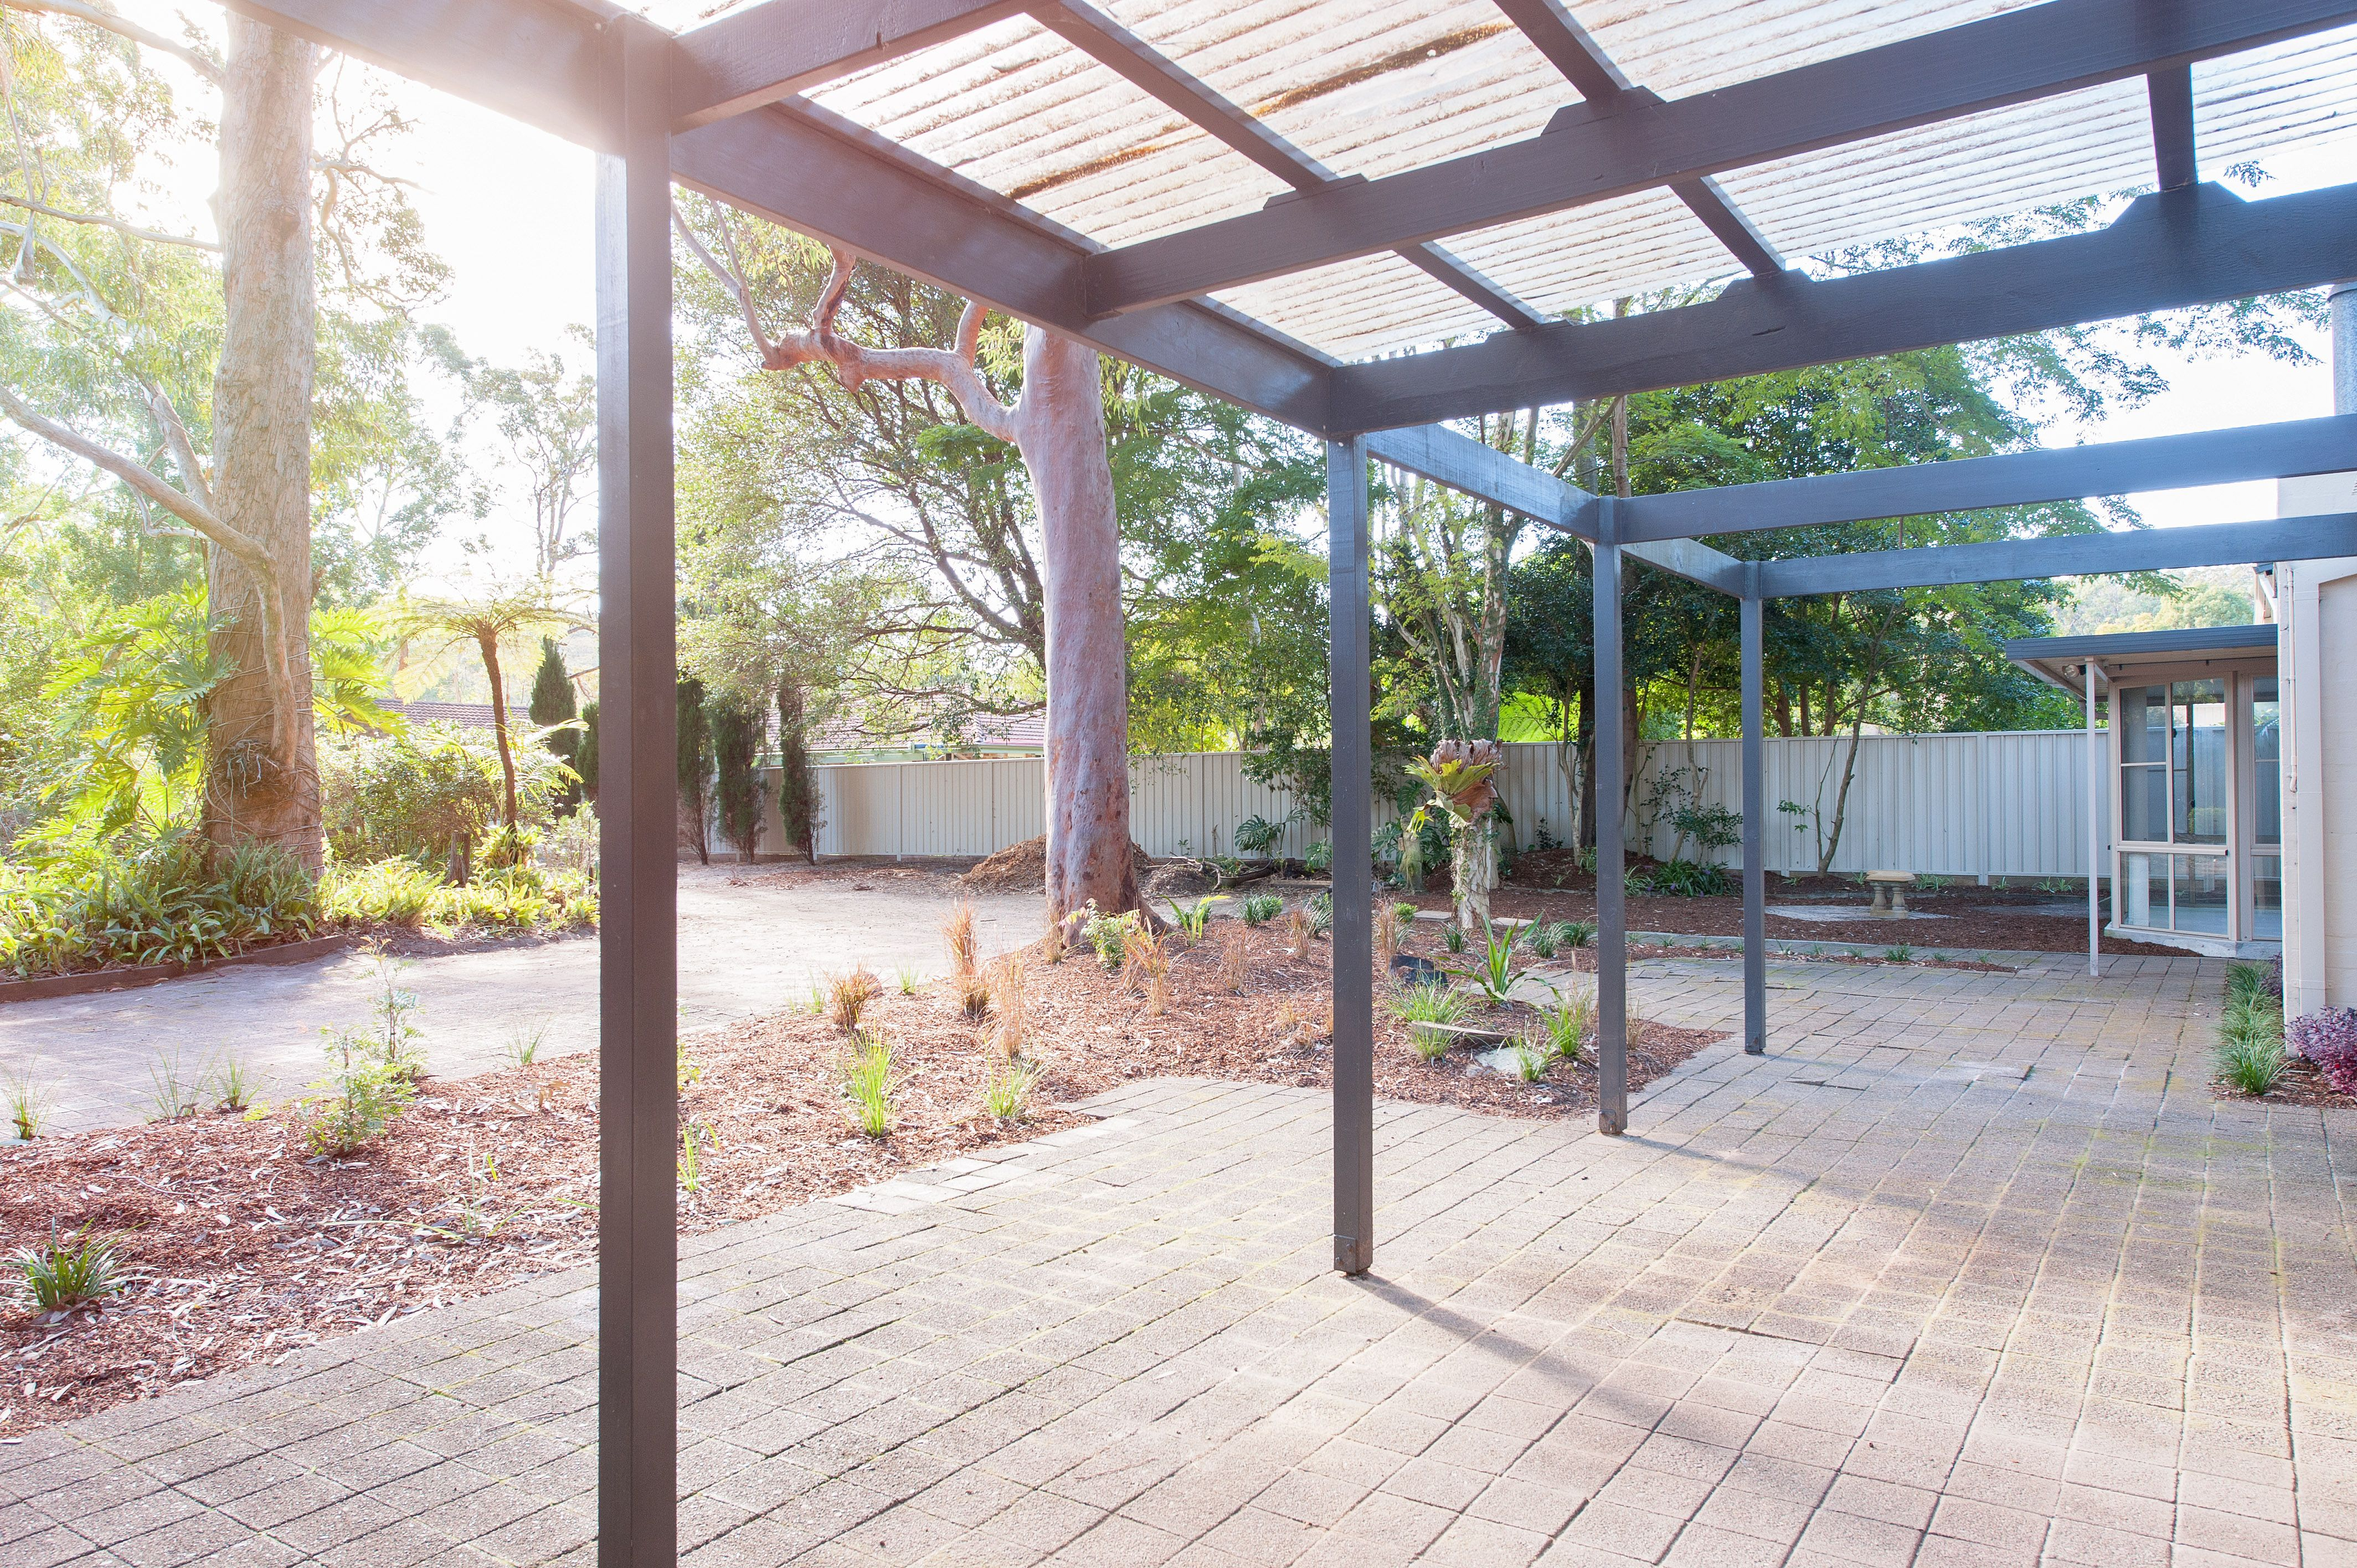 202 Salamander Way, Salamander Bay